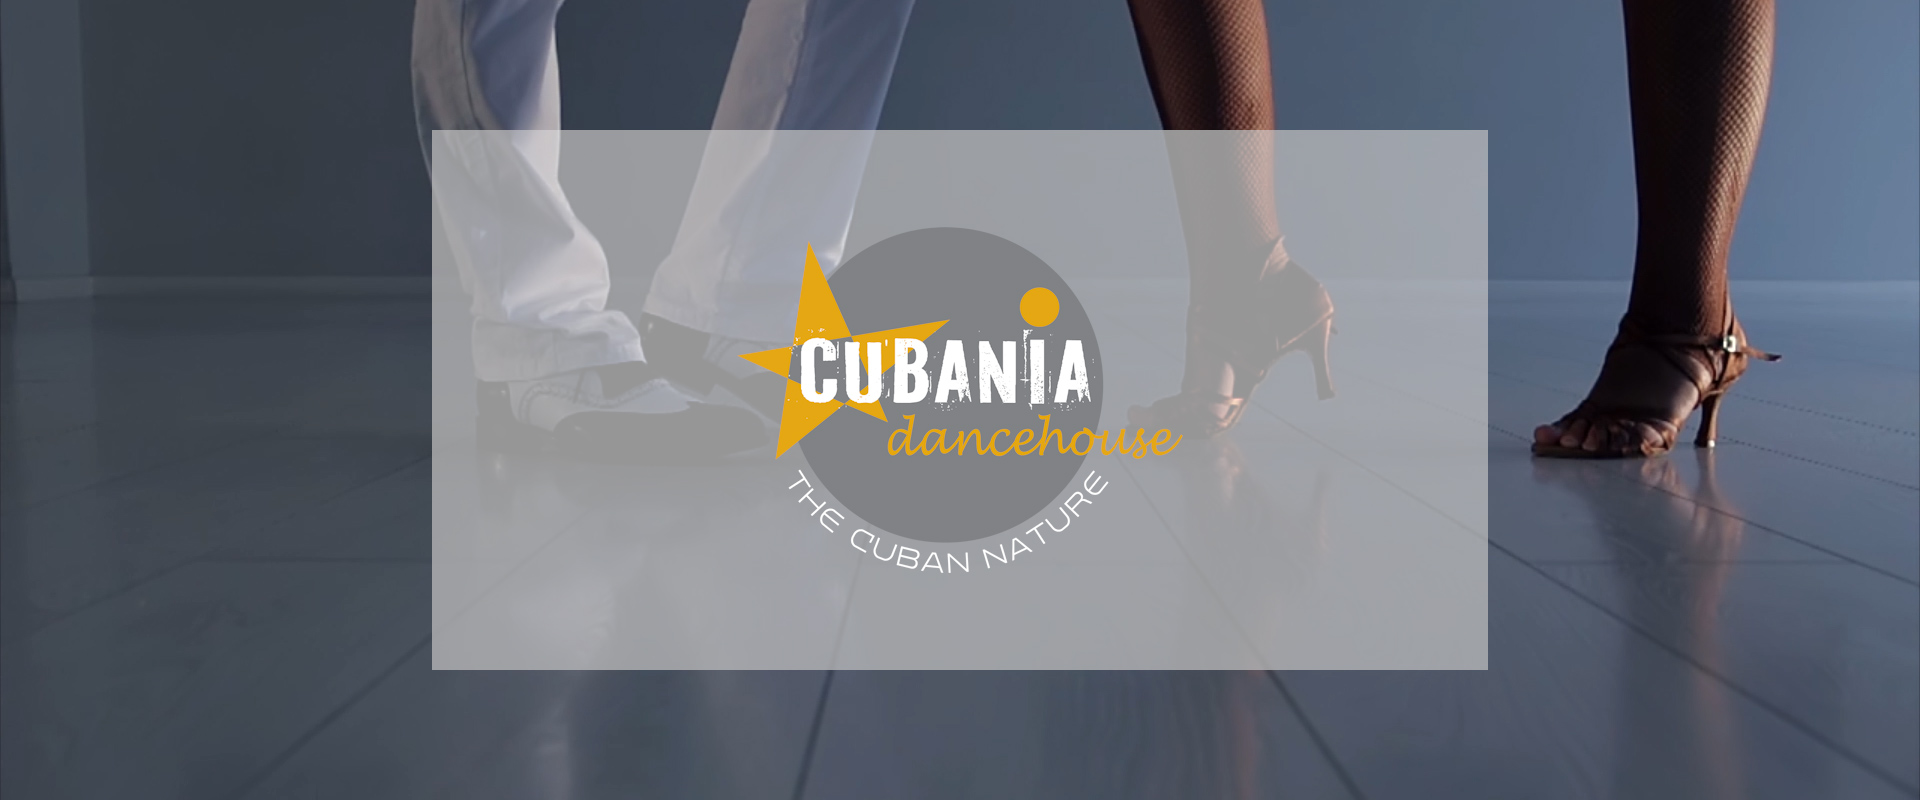 cubania dance house promo corporate brand video videography company